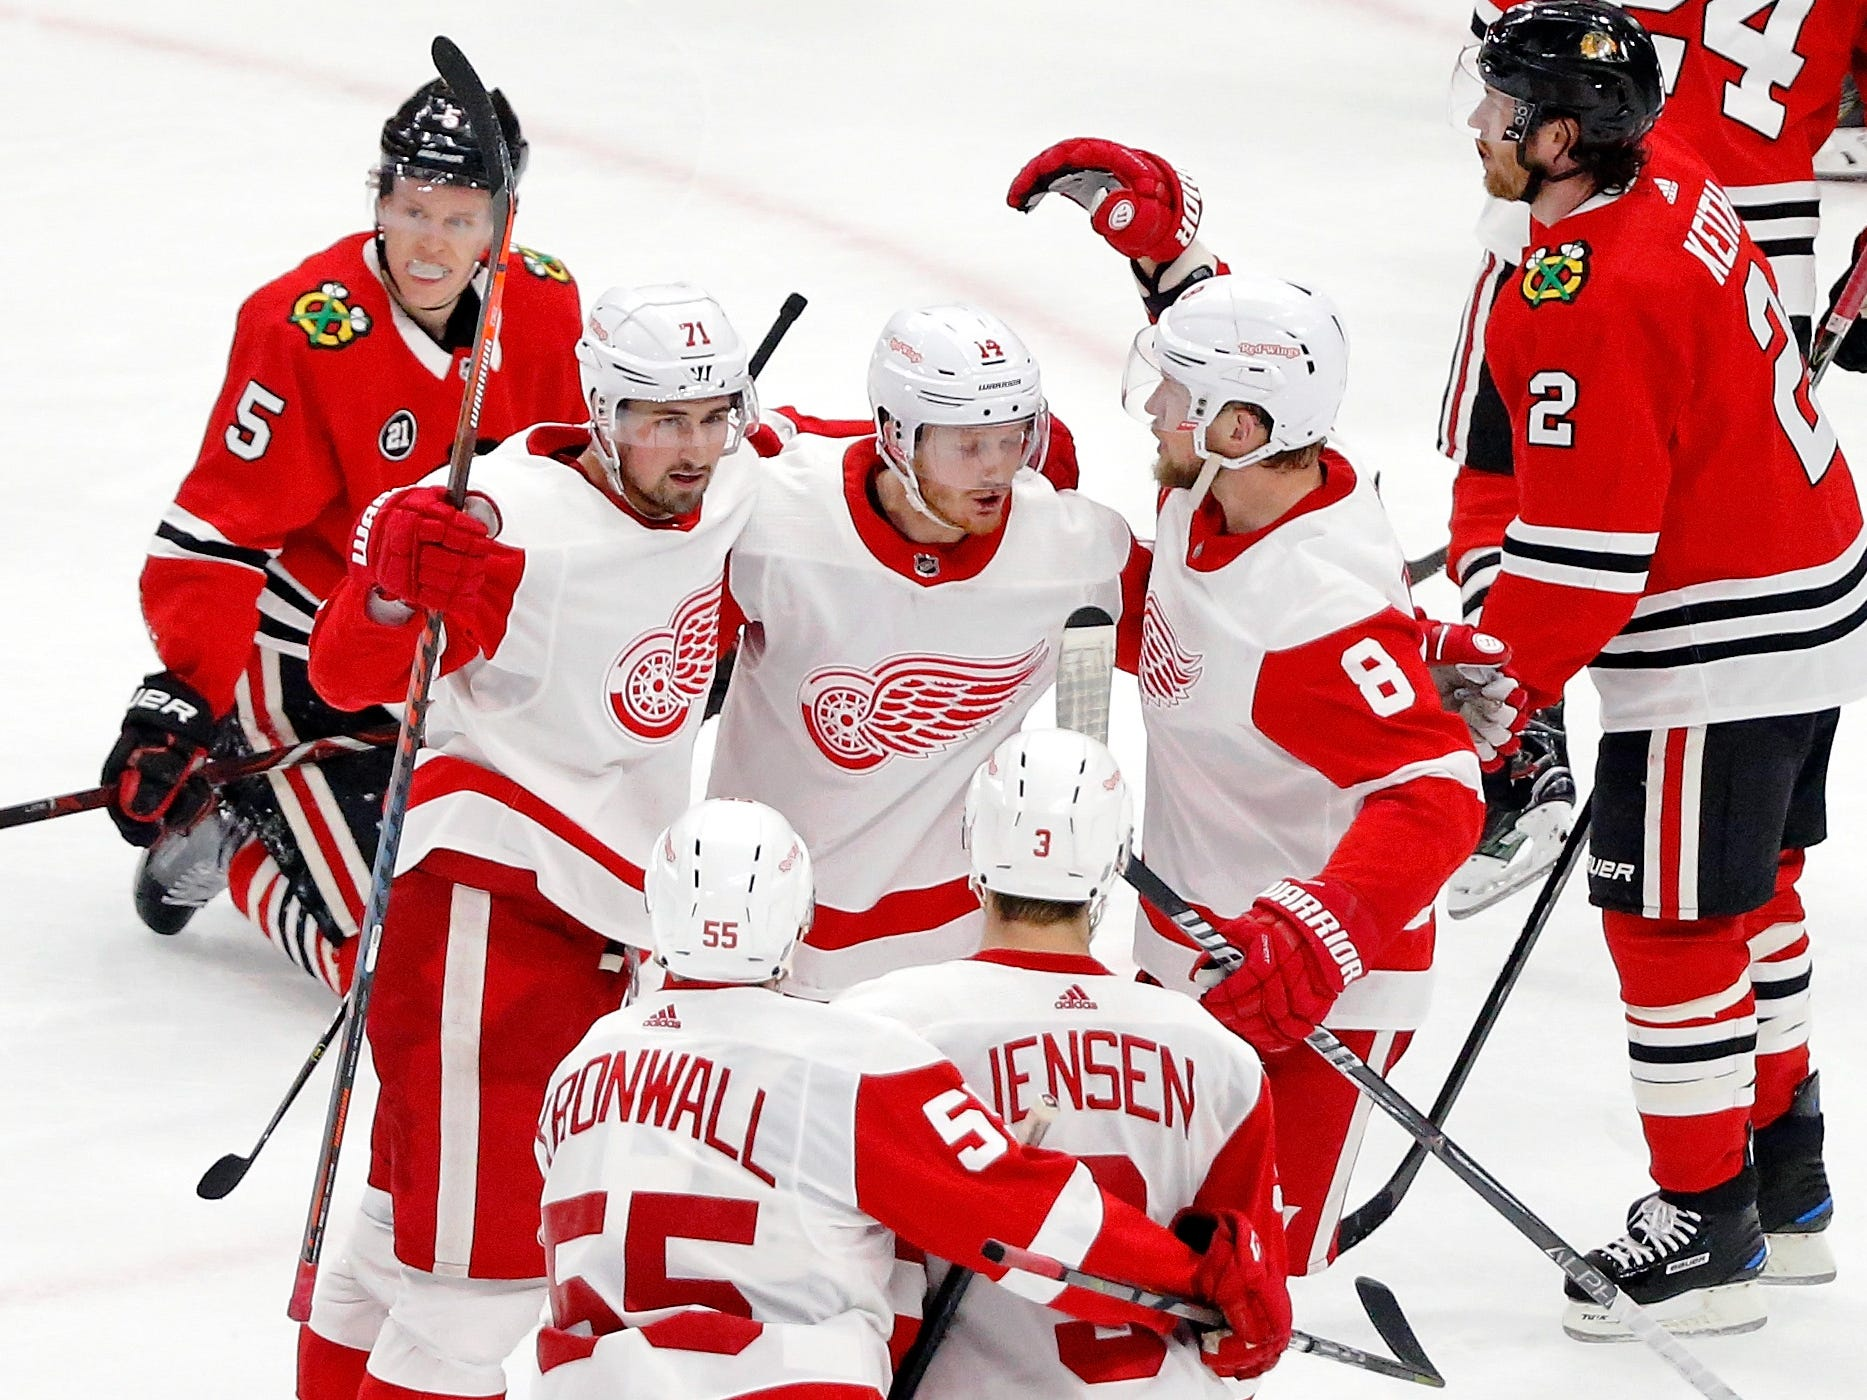 Detroit Red Wings right wing Gustav Nyquist, center, is congratulated by Dylan Larkin (71) and Justin Abdelkader (8) after scoring against the Chicago Blackhawks during the third period Sunday, Feb. 10, 2019.